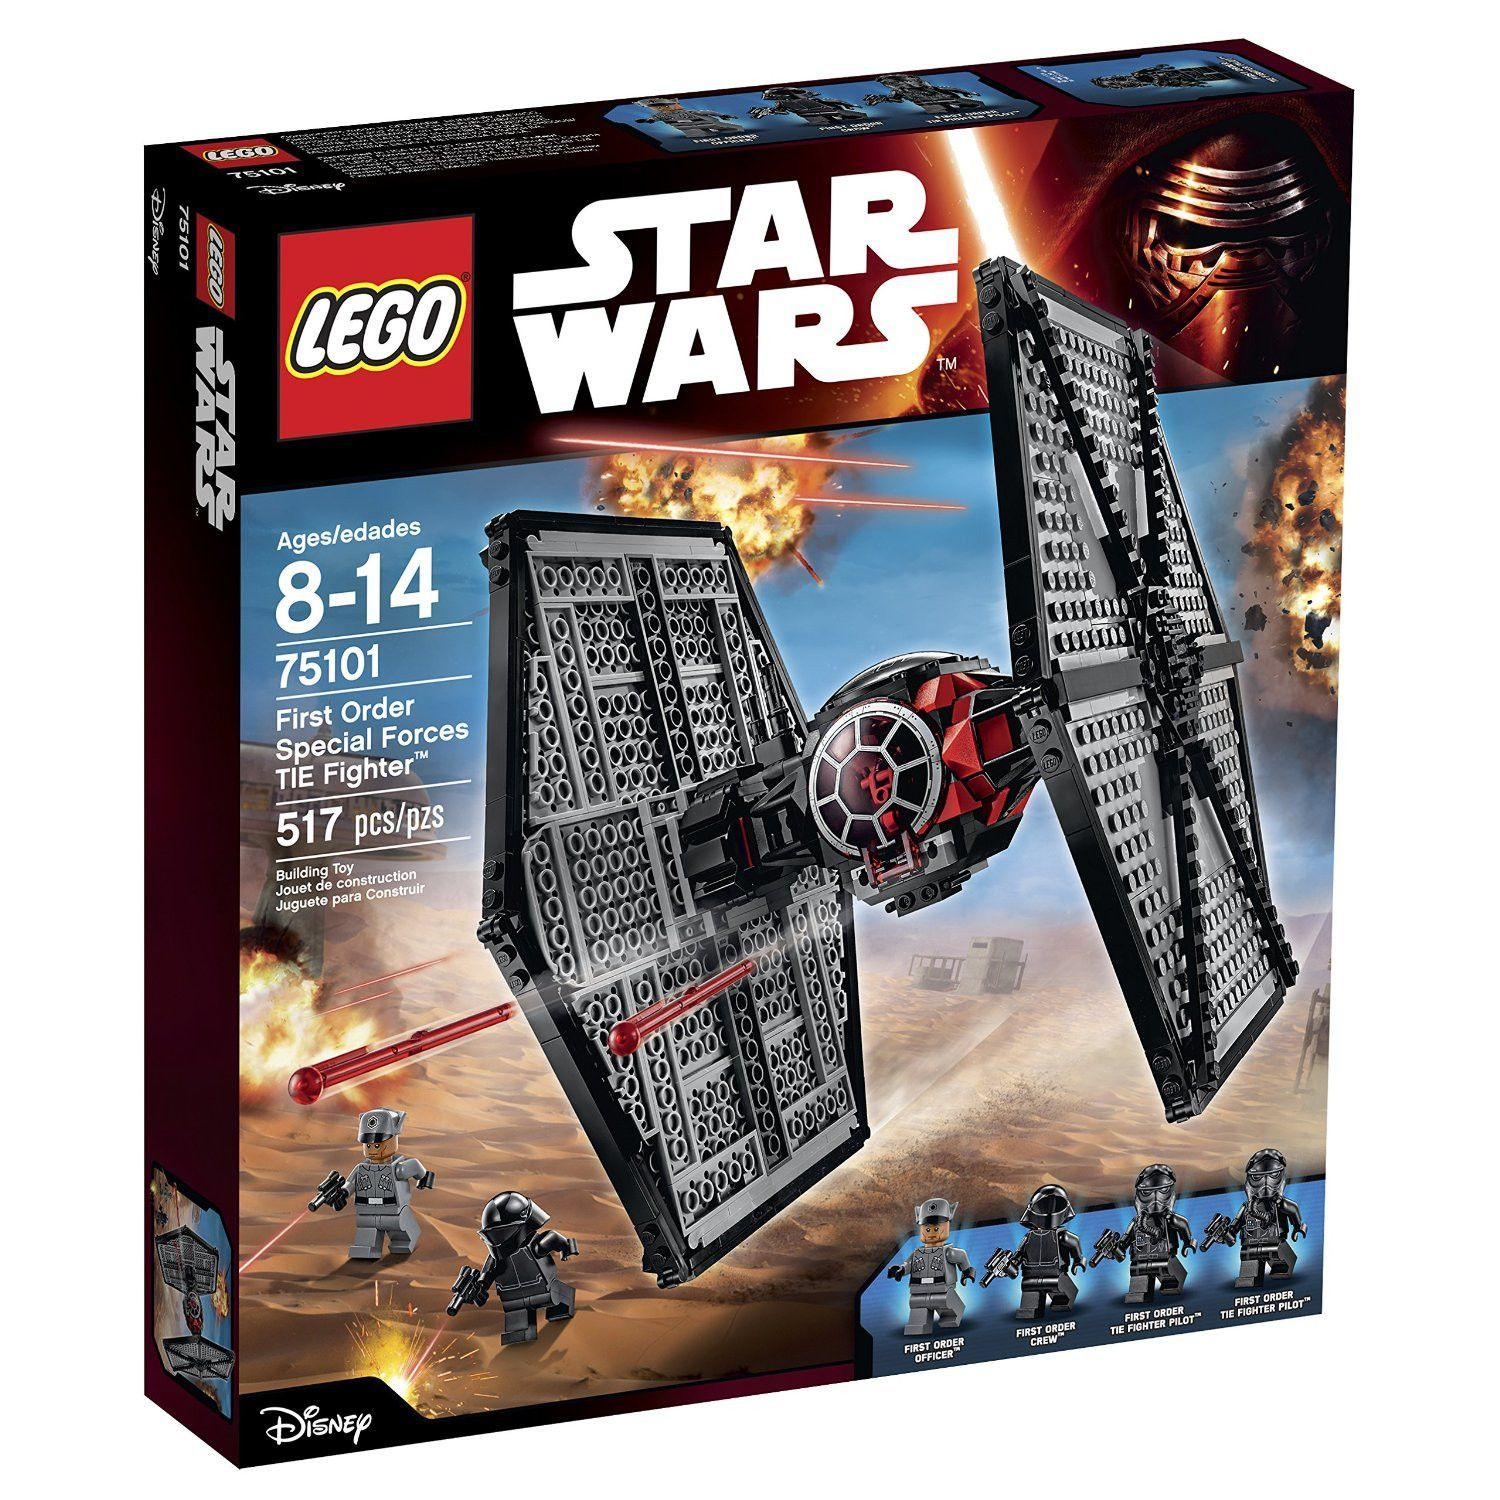 Lego Star Wars First Order Special Forces Tie Fighter Lego Star Wars Sets Tie Fighter Star Wars Toys